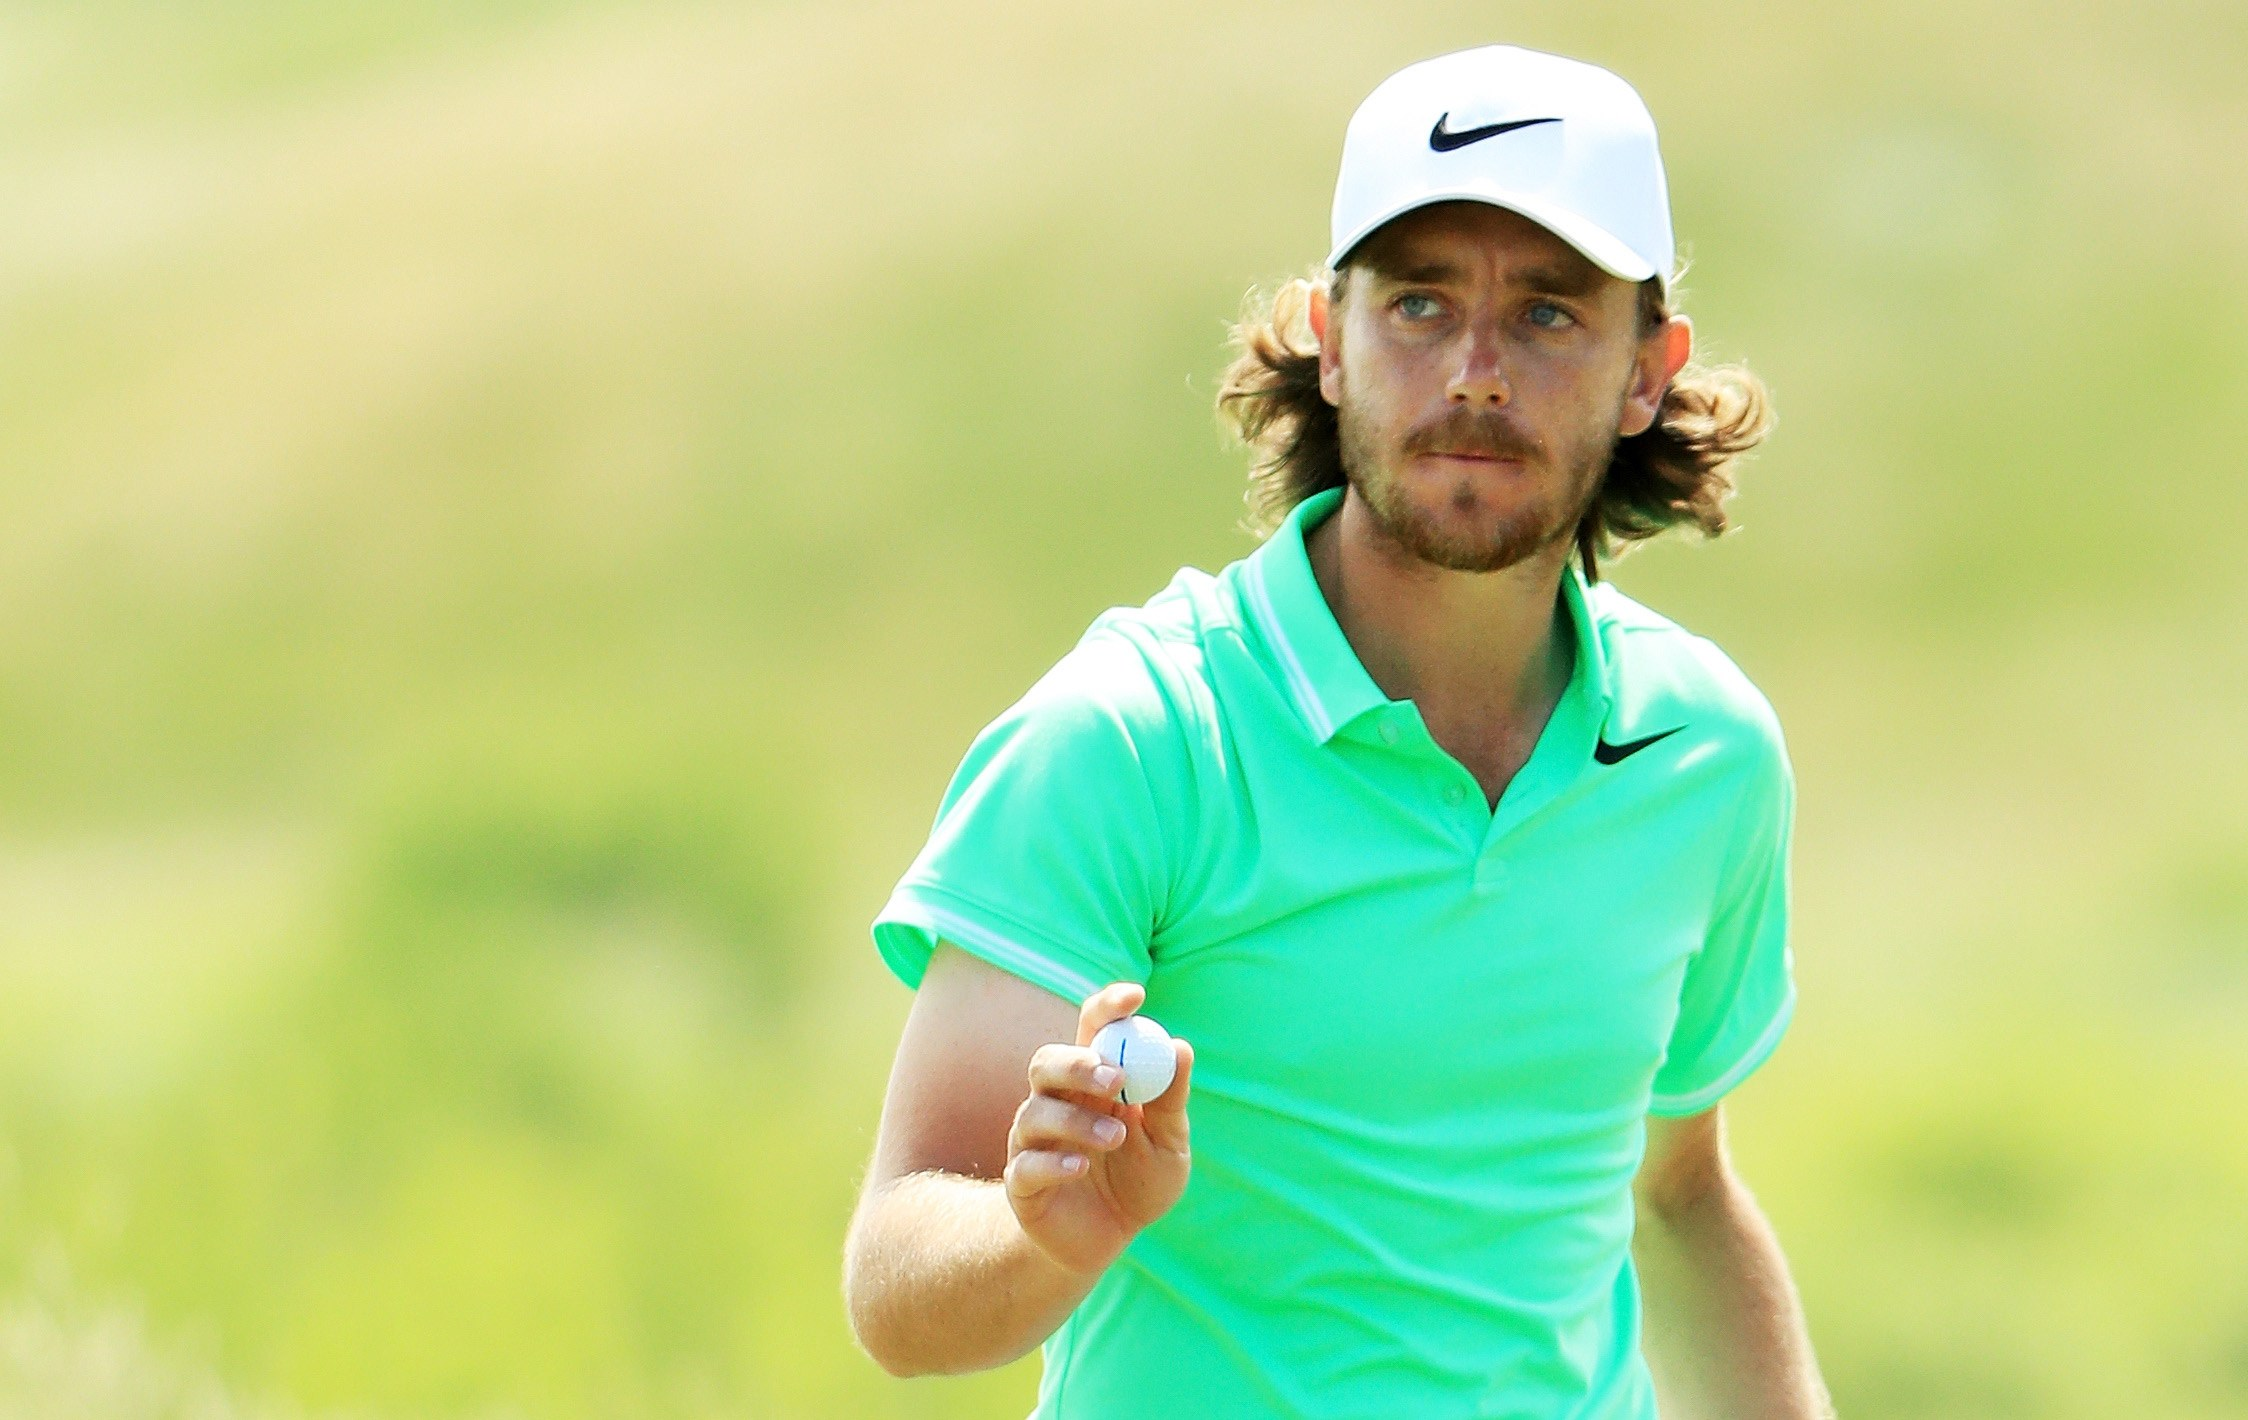 Fleetwood finishes in tied 61st place in USPGA after tough golf on 'brutal' course